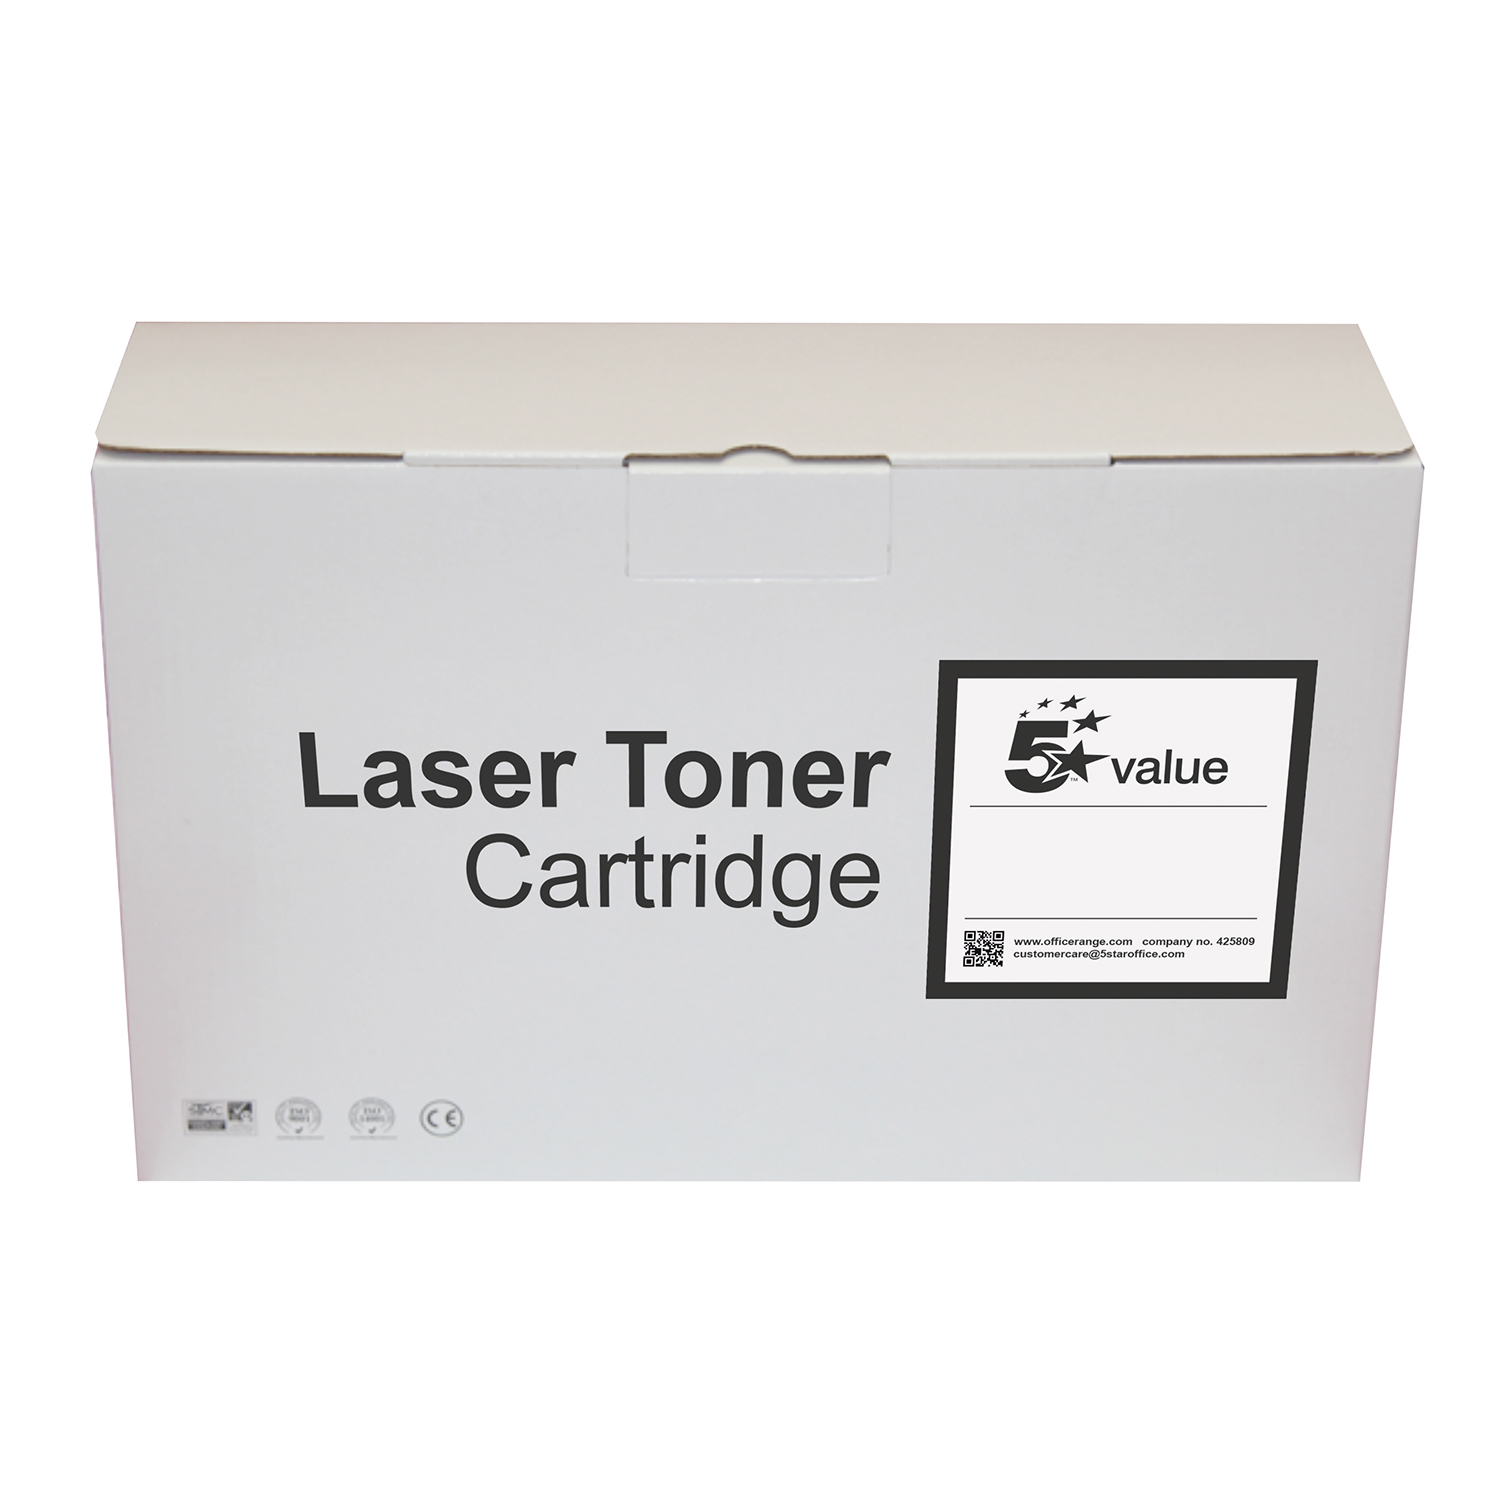 5 Star Value Remanufactured Laser Toner Cartridge Page Life 3000pp Black HP No. 53A Q7553A Alternative